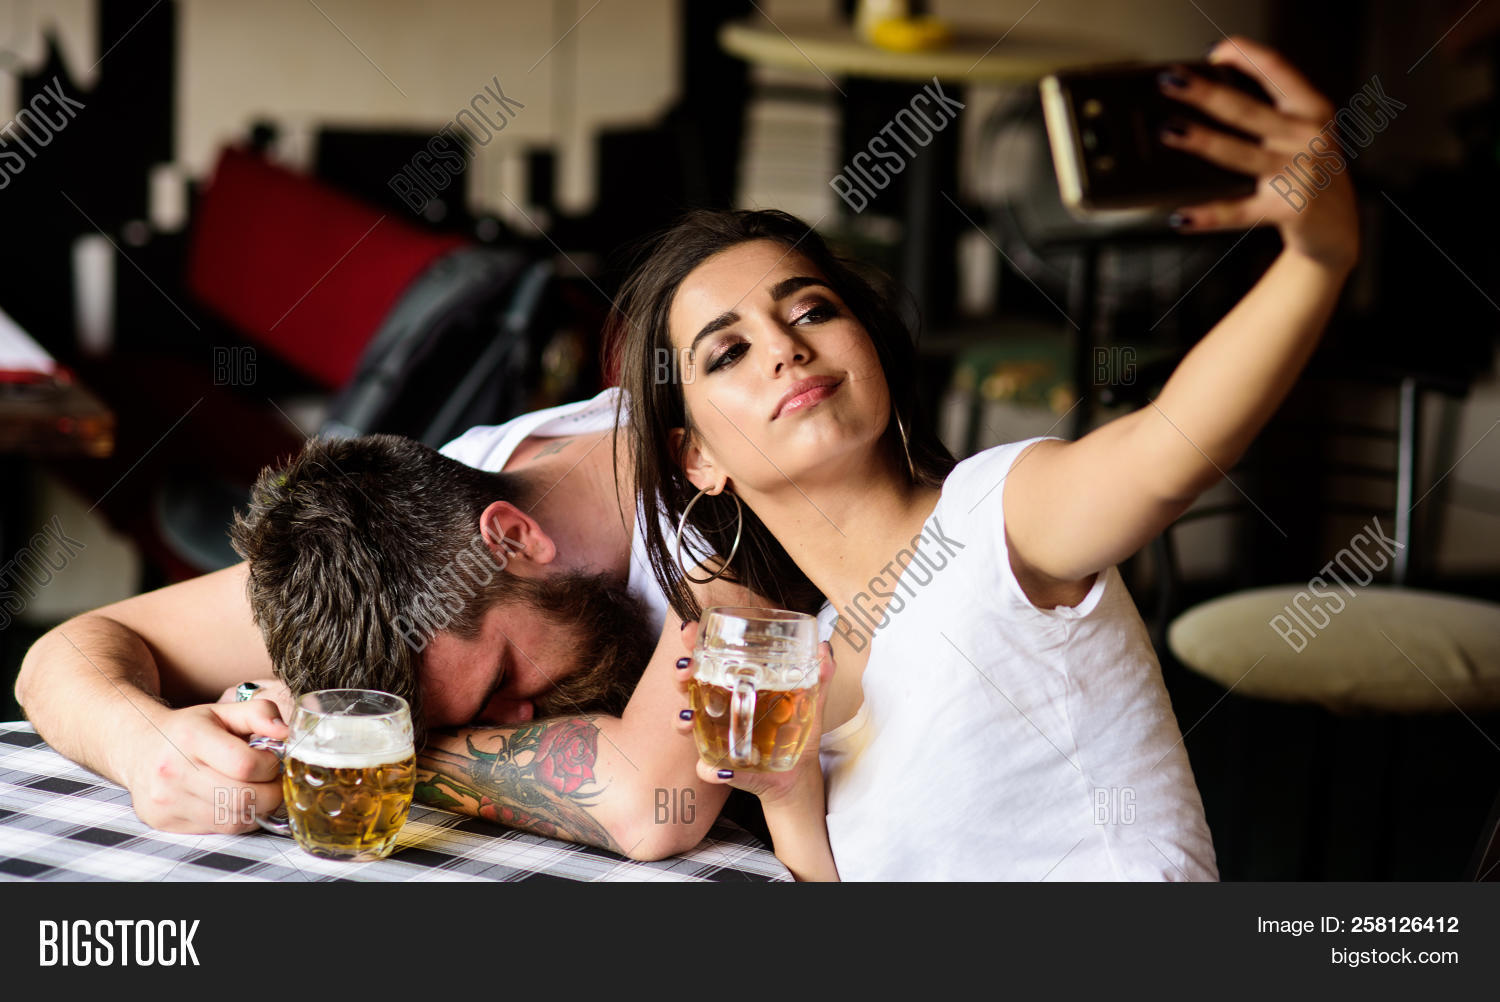 Take Selfie To Remember Great Event. Woman Making Fun Of Drunk Friend. Girl Taking Selfie Photo Drun